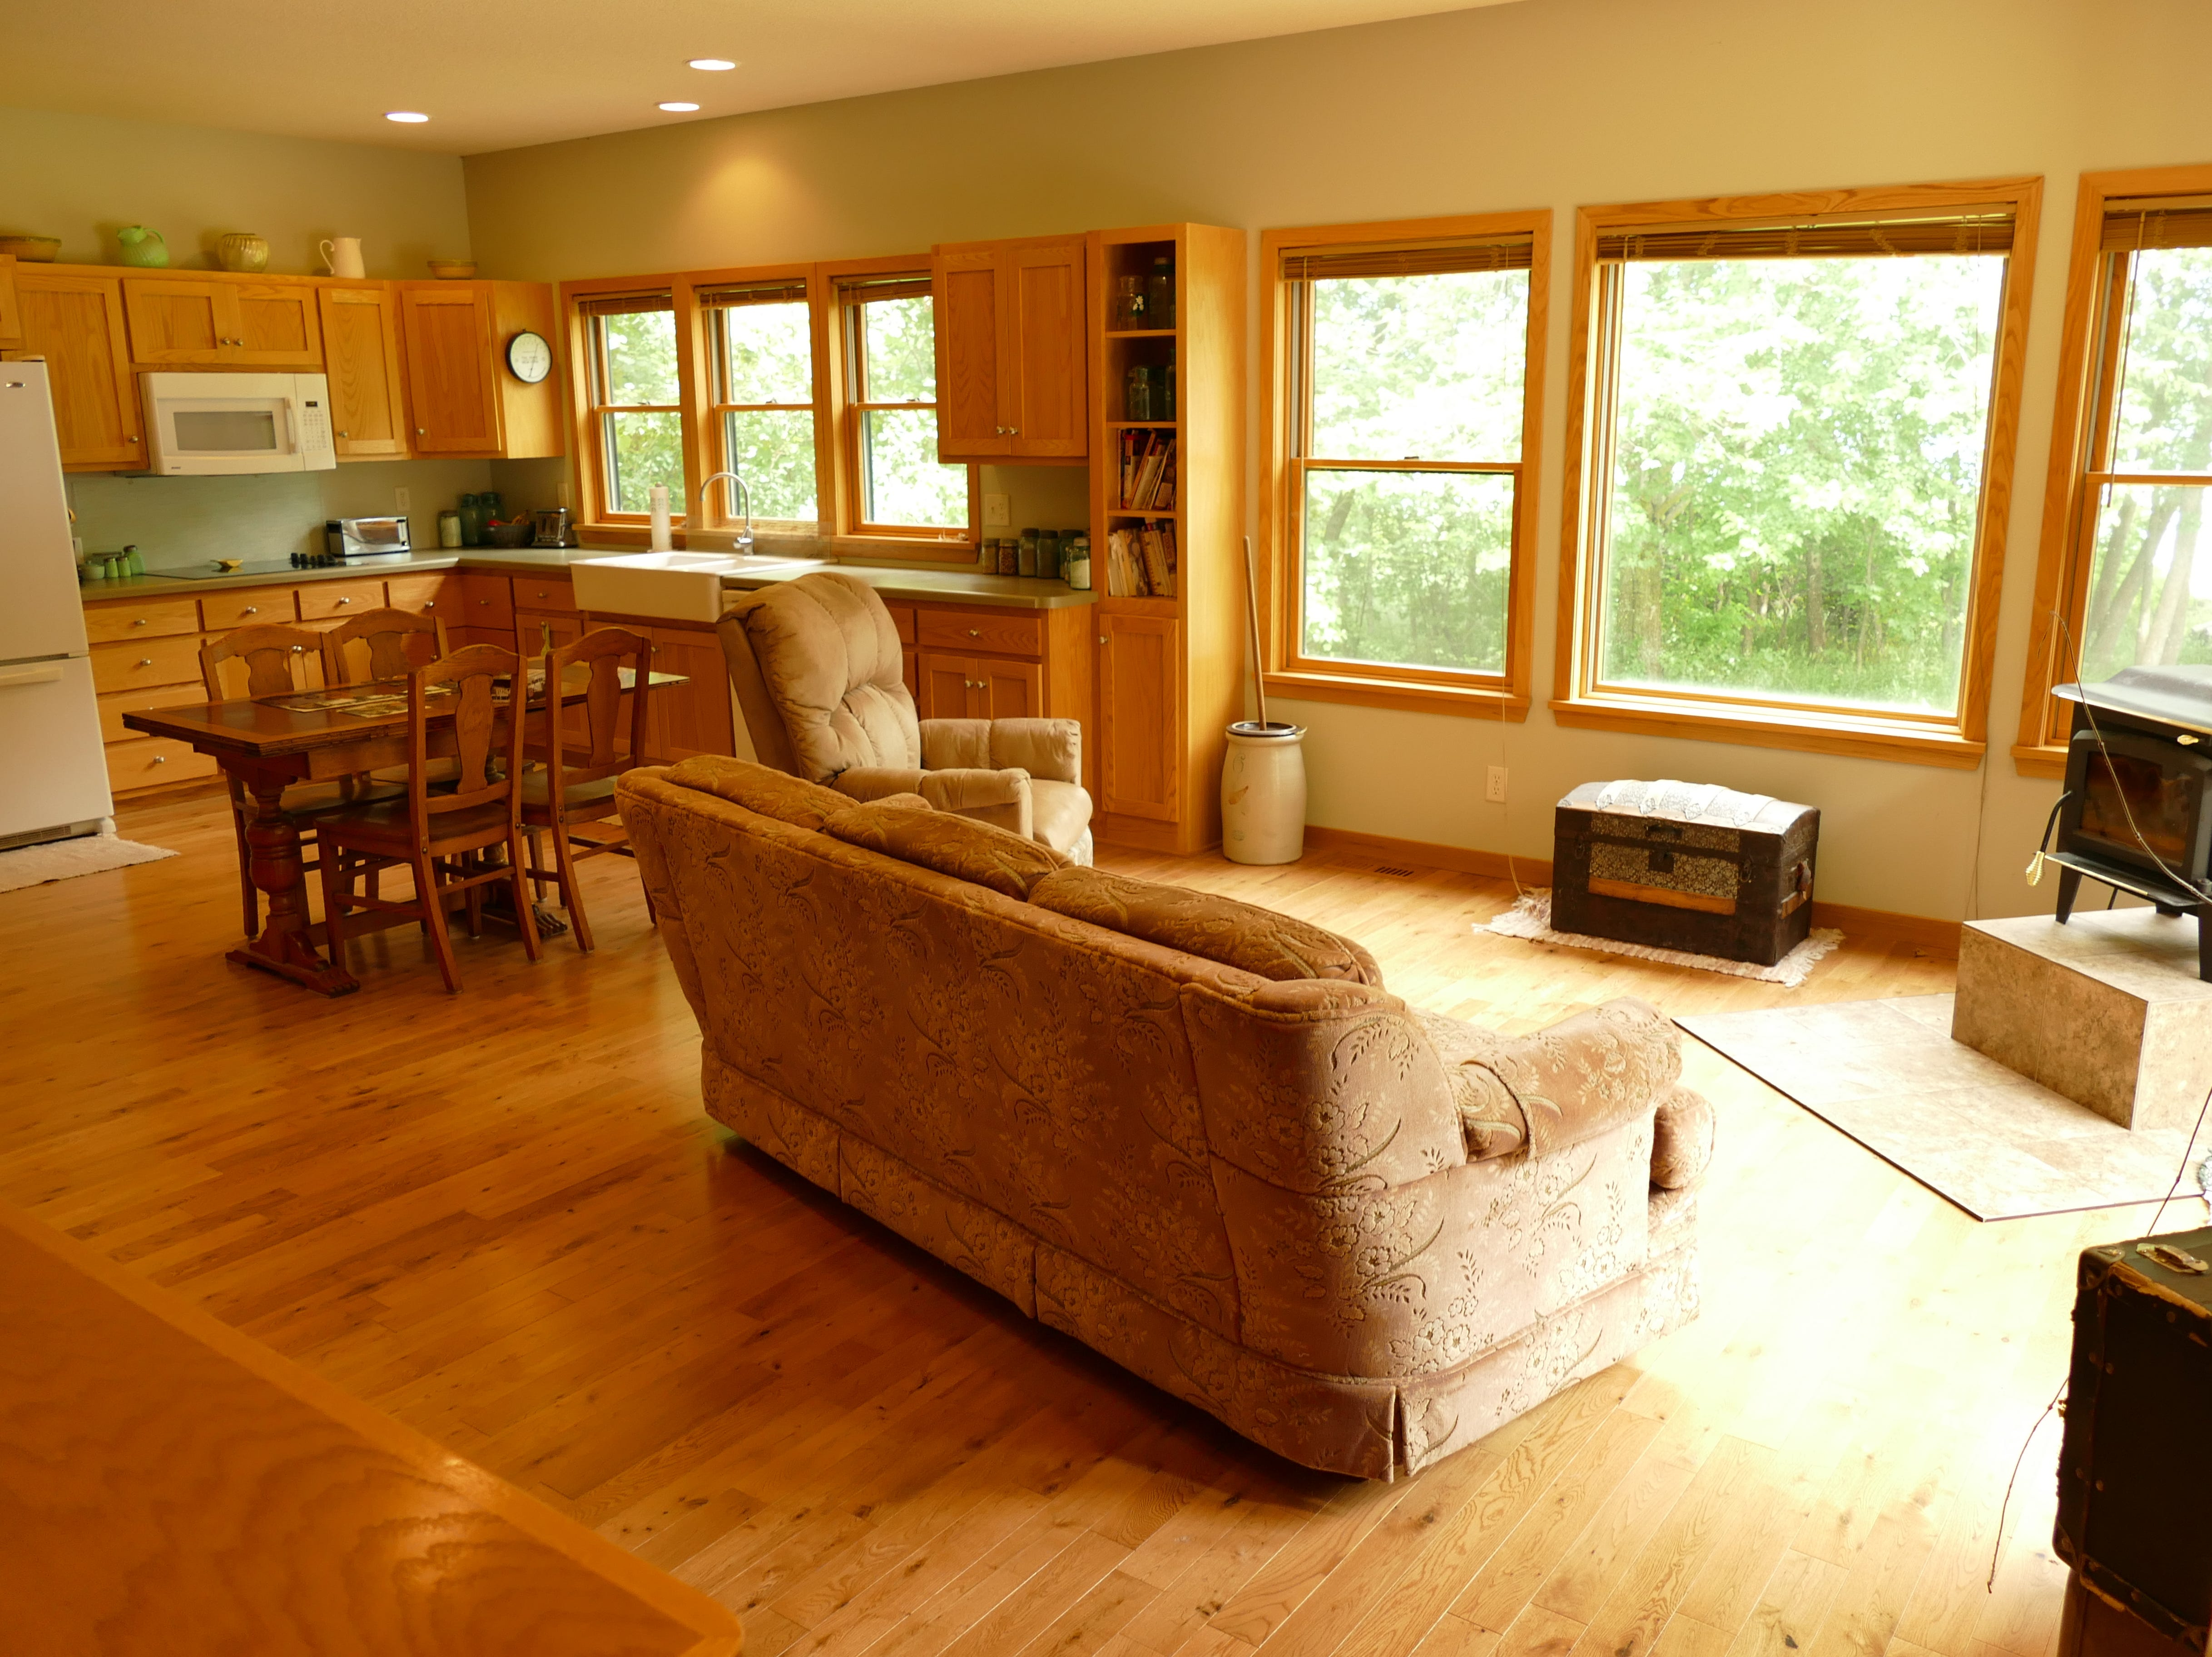 Theattached mother-in-law home is complete with a large kitchen and walk-in pantry, dining room and great room overlooking the lake